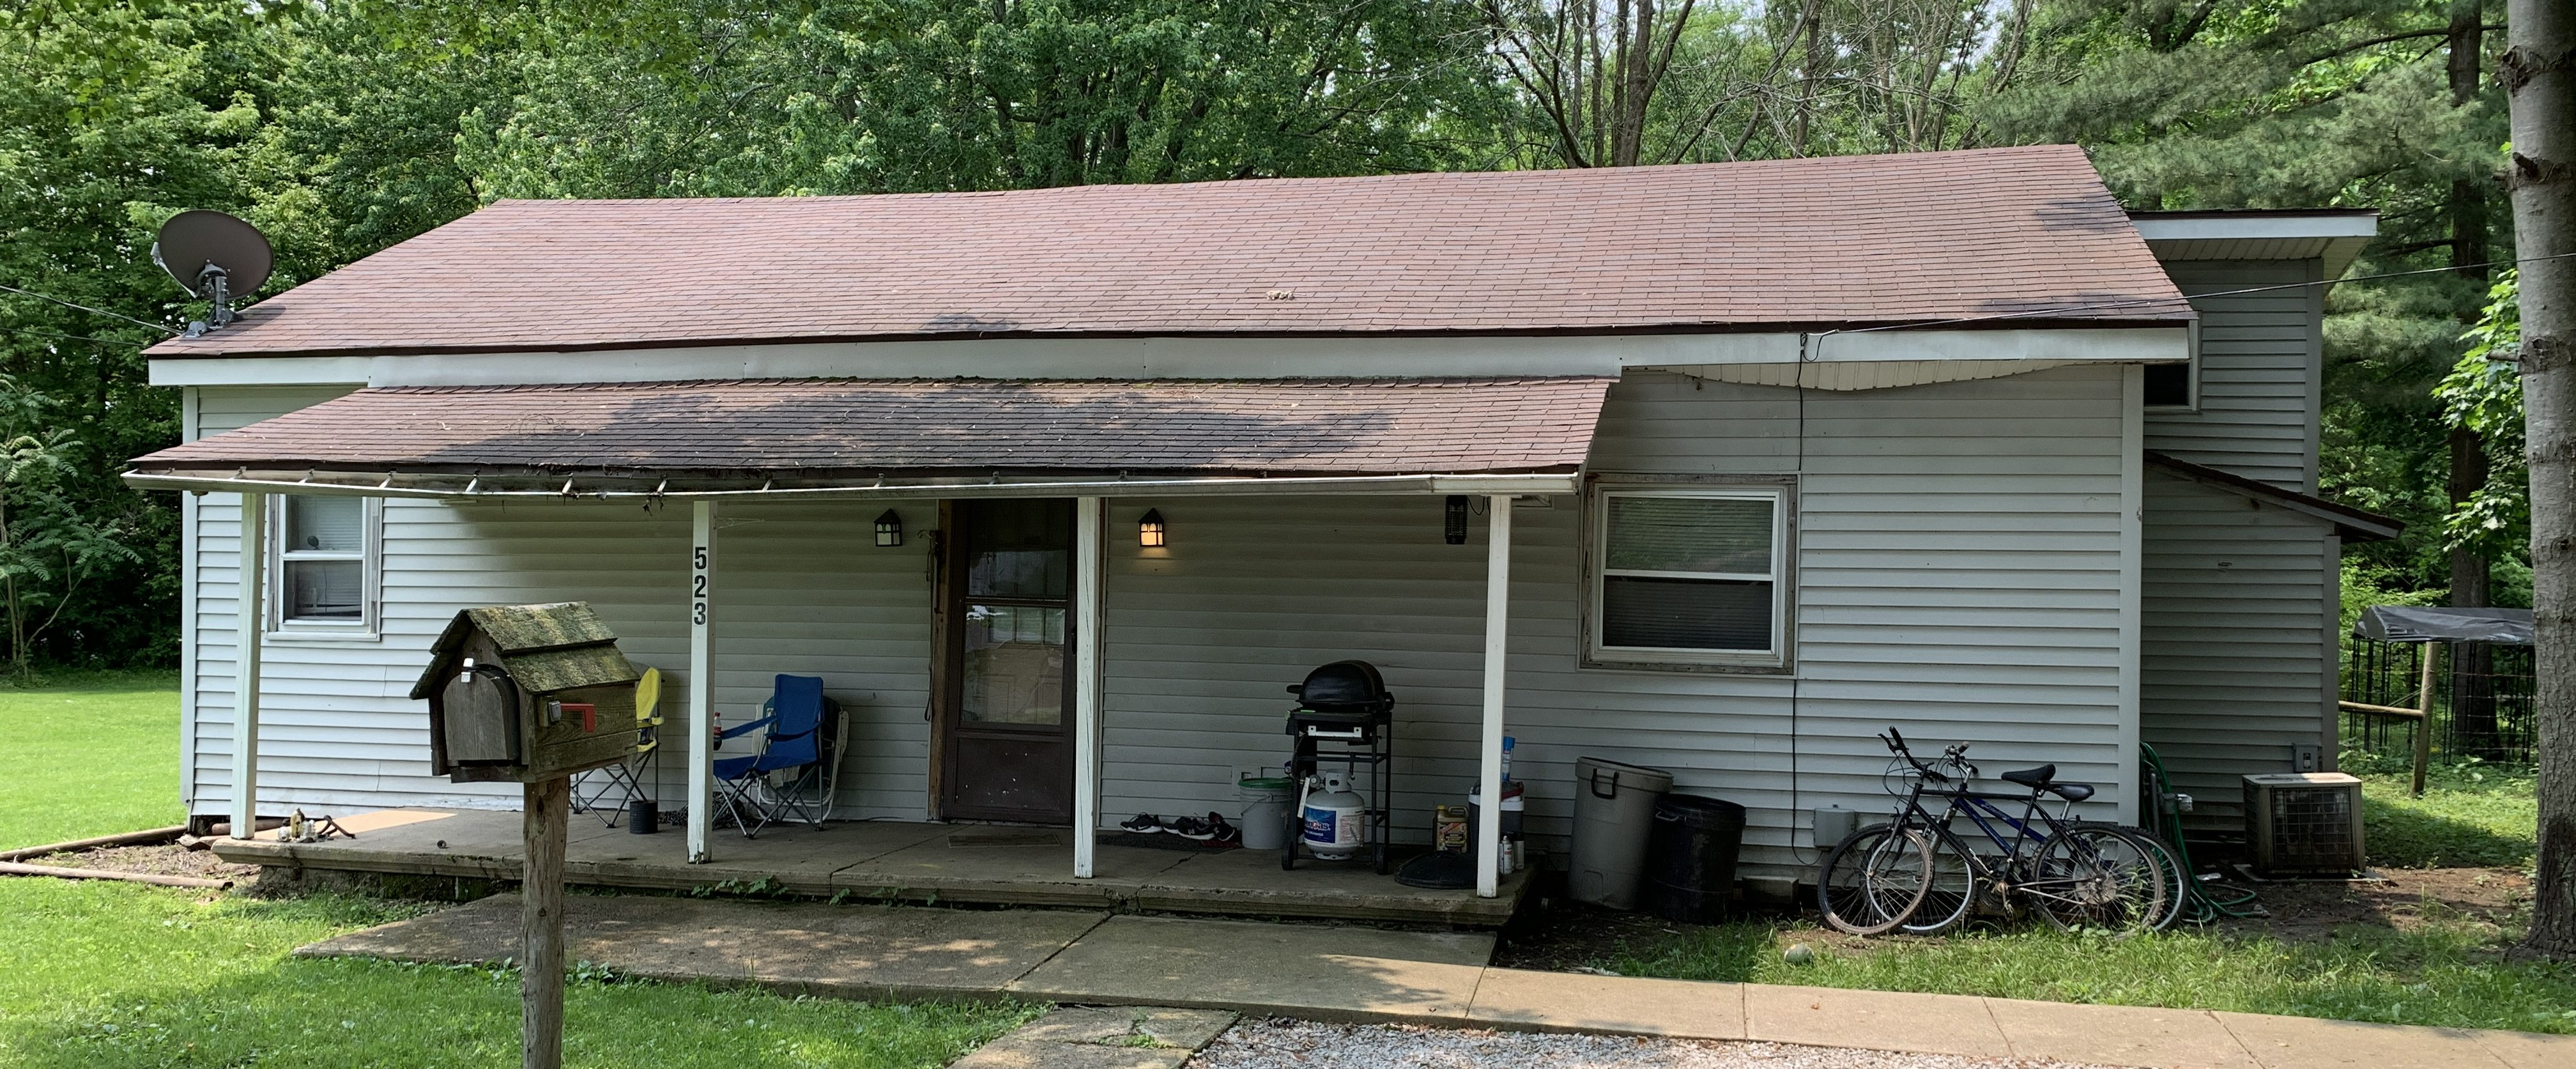 A RANCH-STYLE FLIP OPPORTUNITY RIGHT IN THE HEART OF THORNTOWN